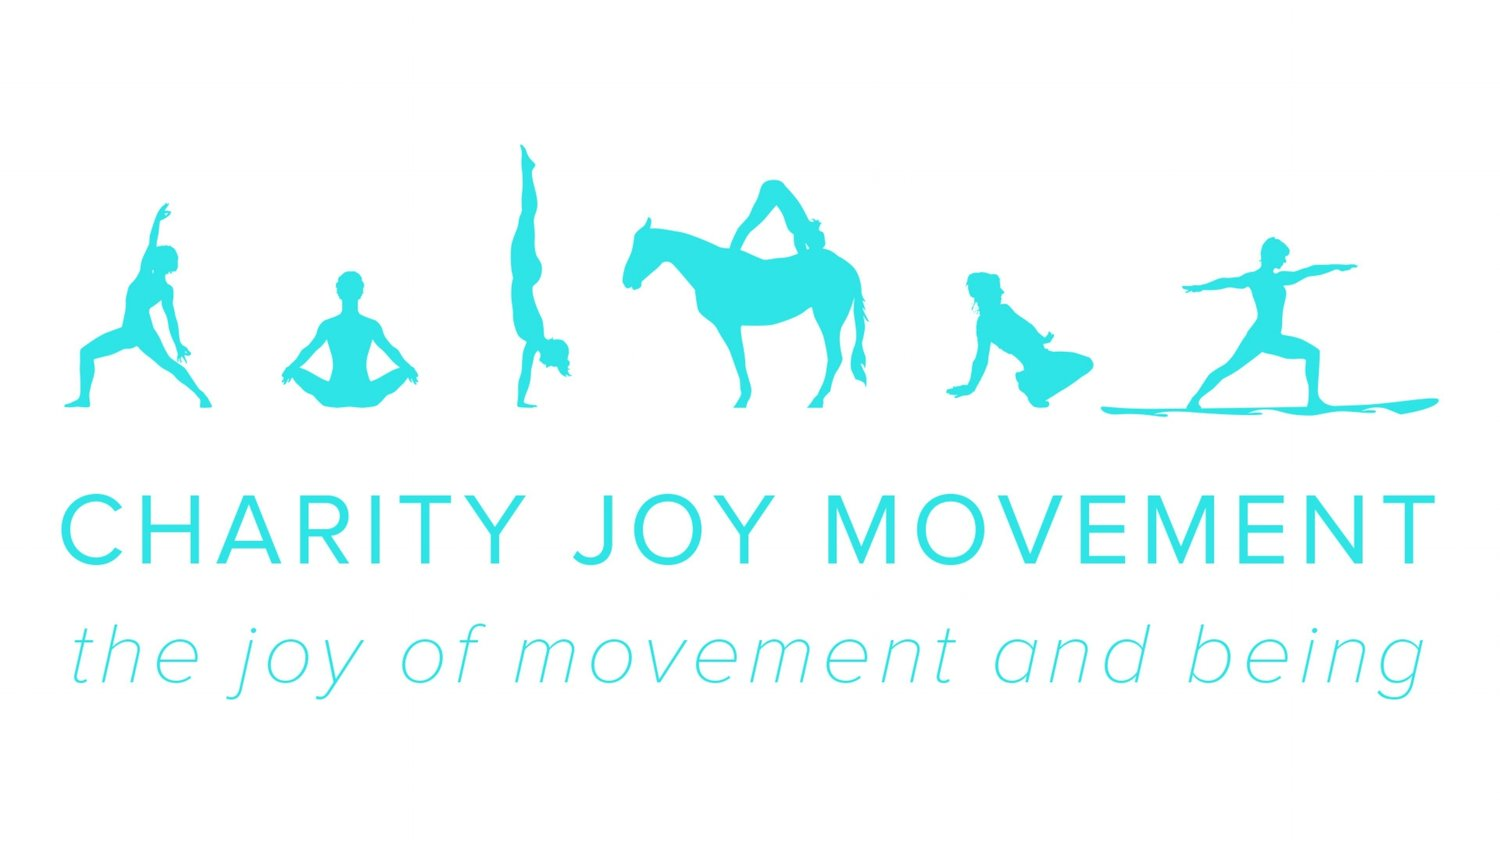 Charity Joy Movement